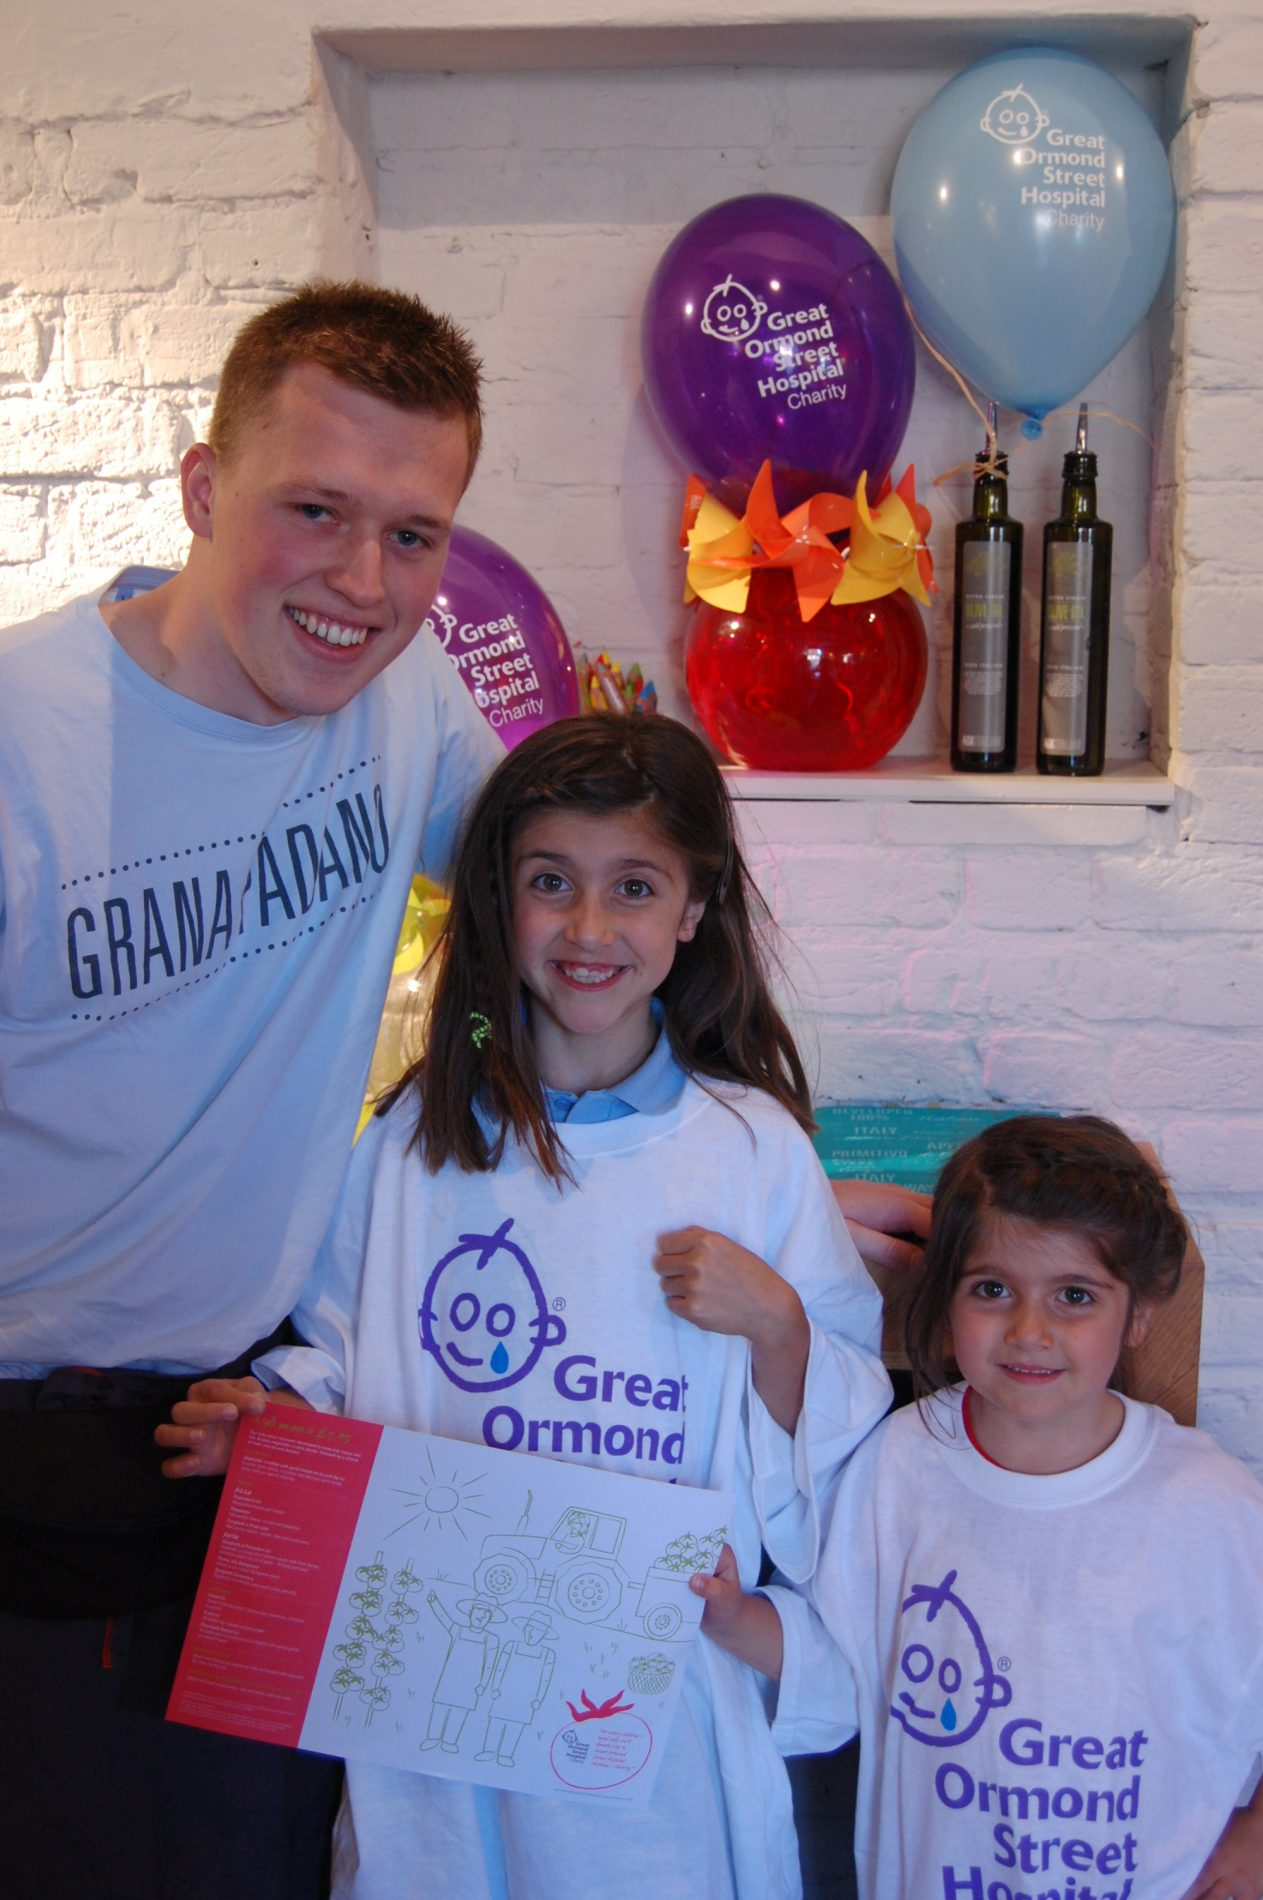 KIDS CAN ENJOY ITALIAN FOOD AND RAISE MUCH NEEDED FUNDS FOR GREAT ORMOND STREET HOSPITAL CHILDREN'S CHARITY